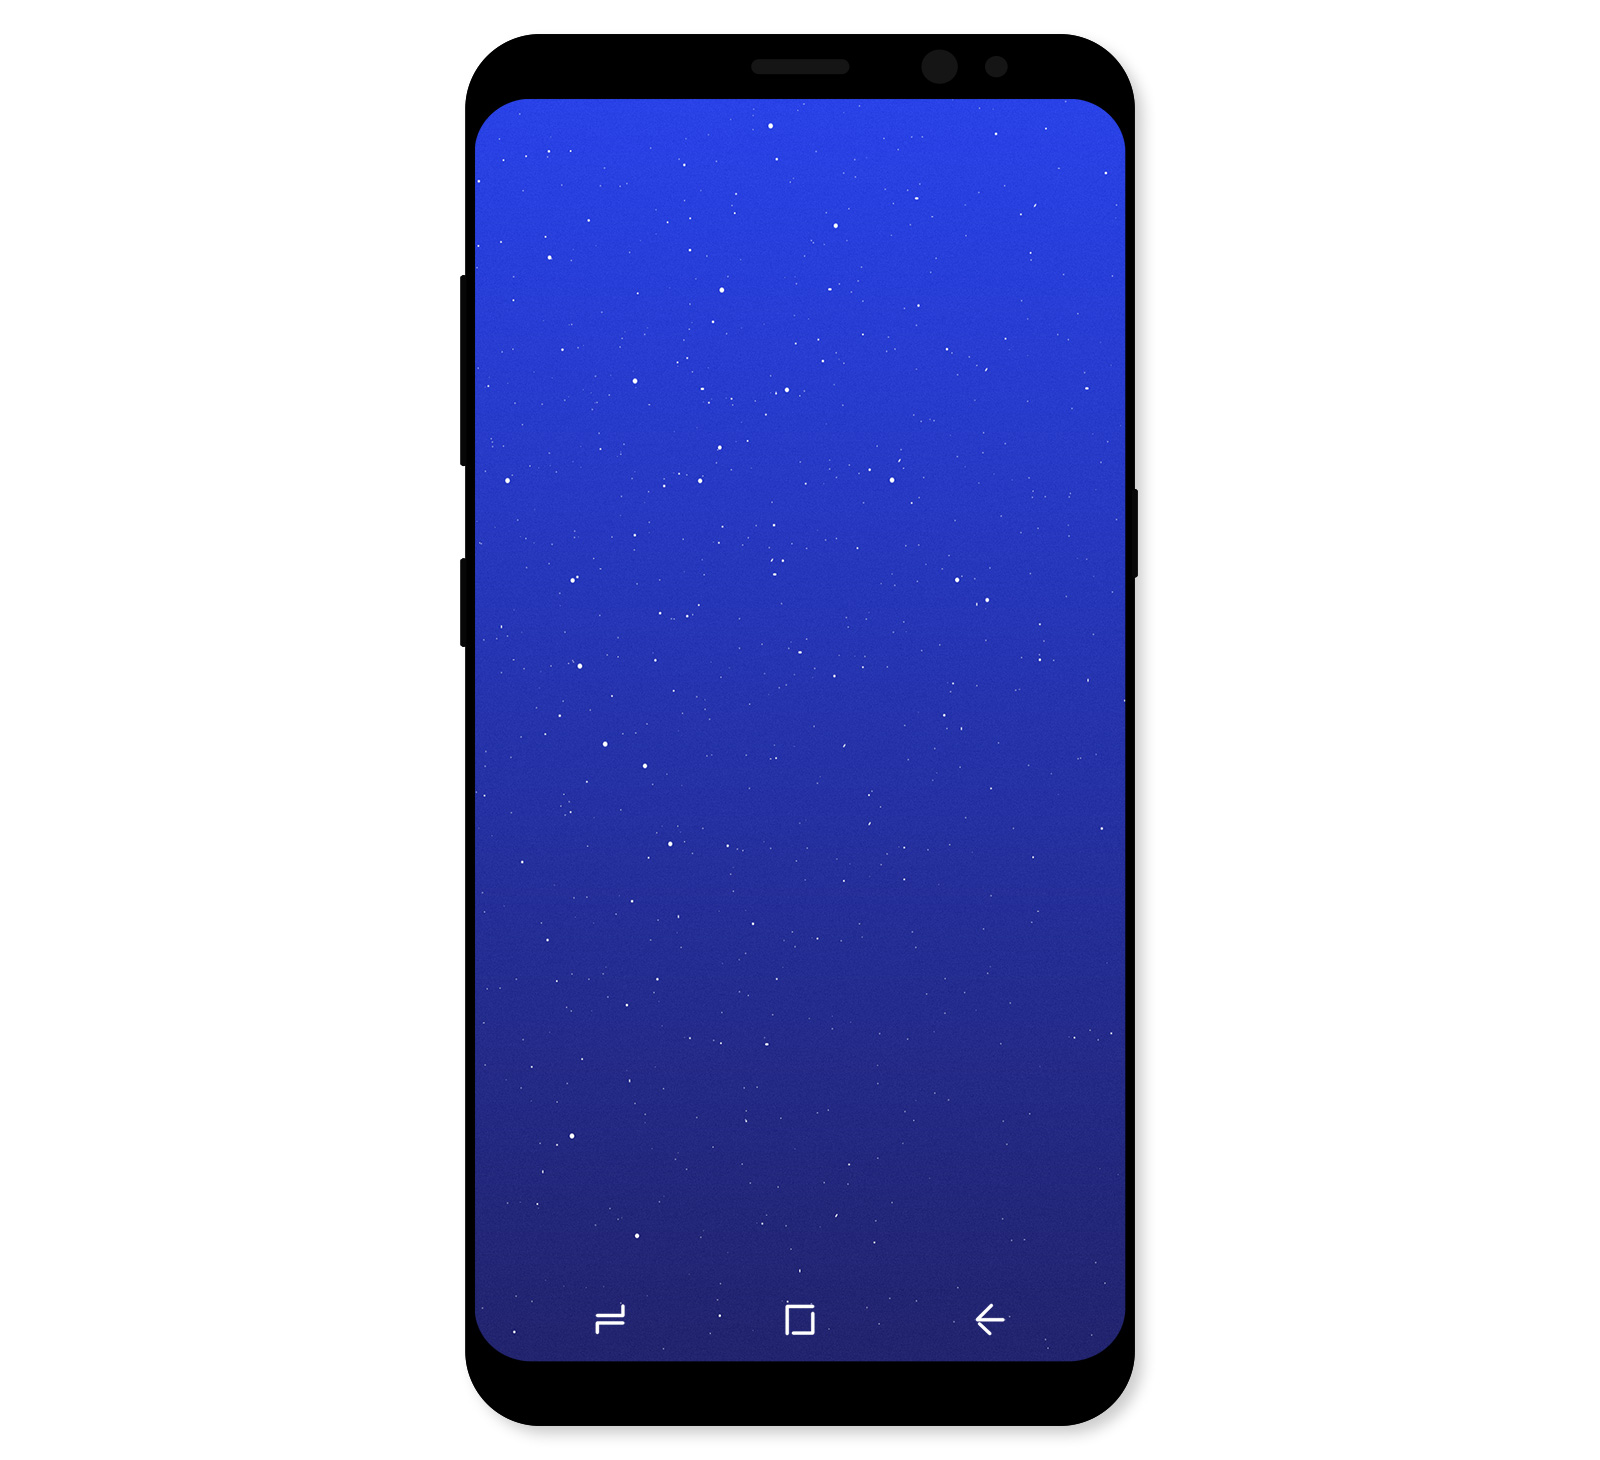 Galaxy S8 Flat Mockup - Free PSD Resource- Download Link